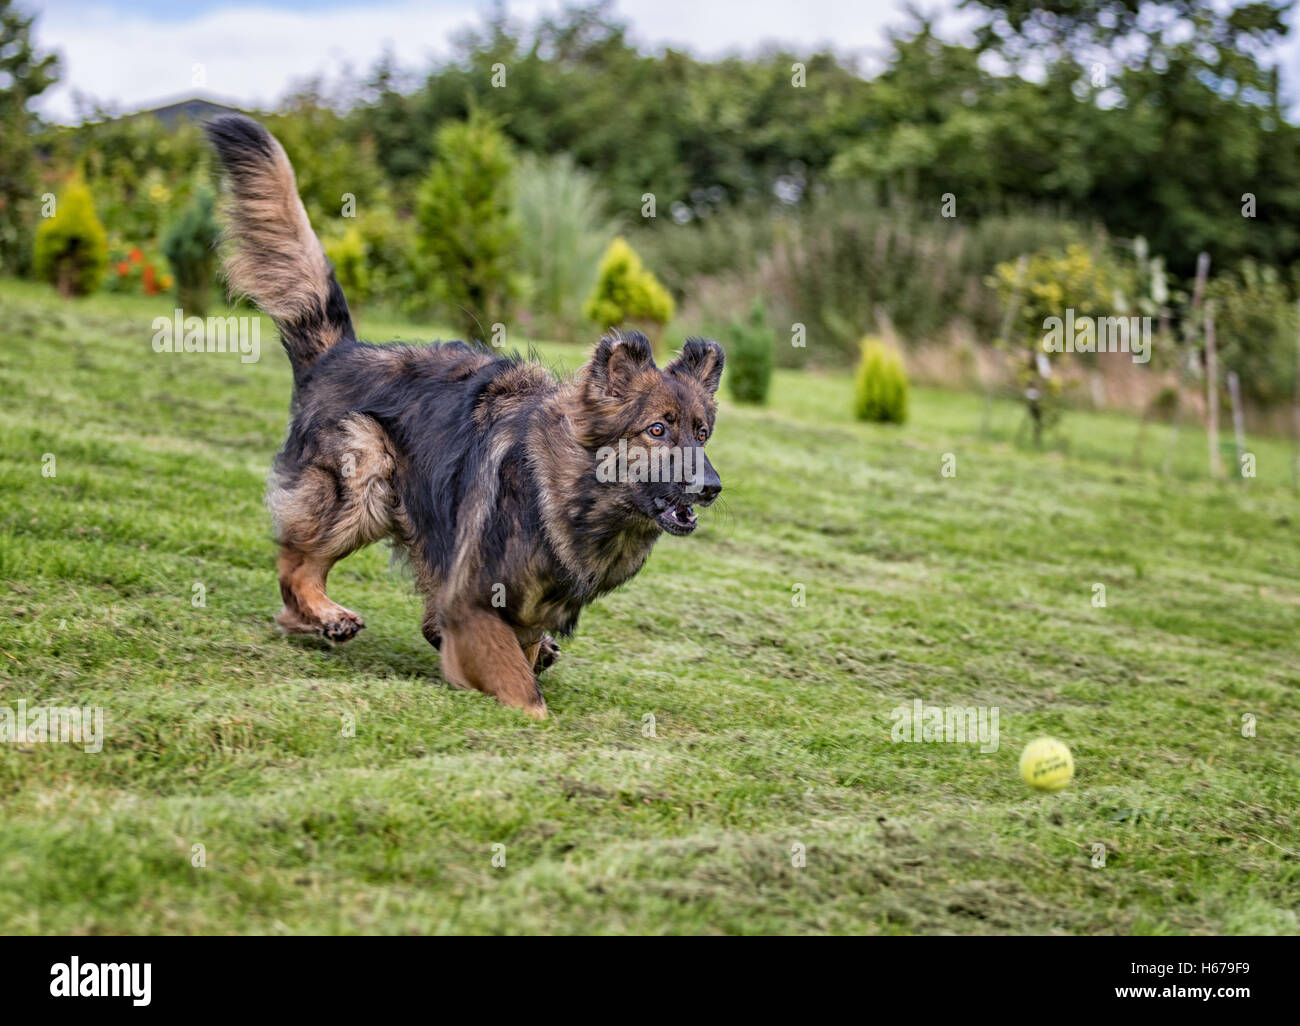 German Shepherd Dog chasing a ball outside on grass a favourite game for dogs. - Stock Image